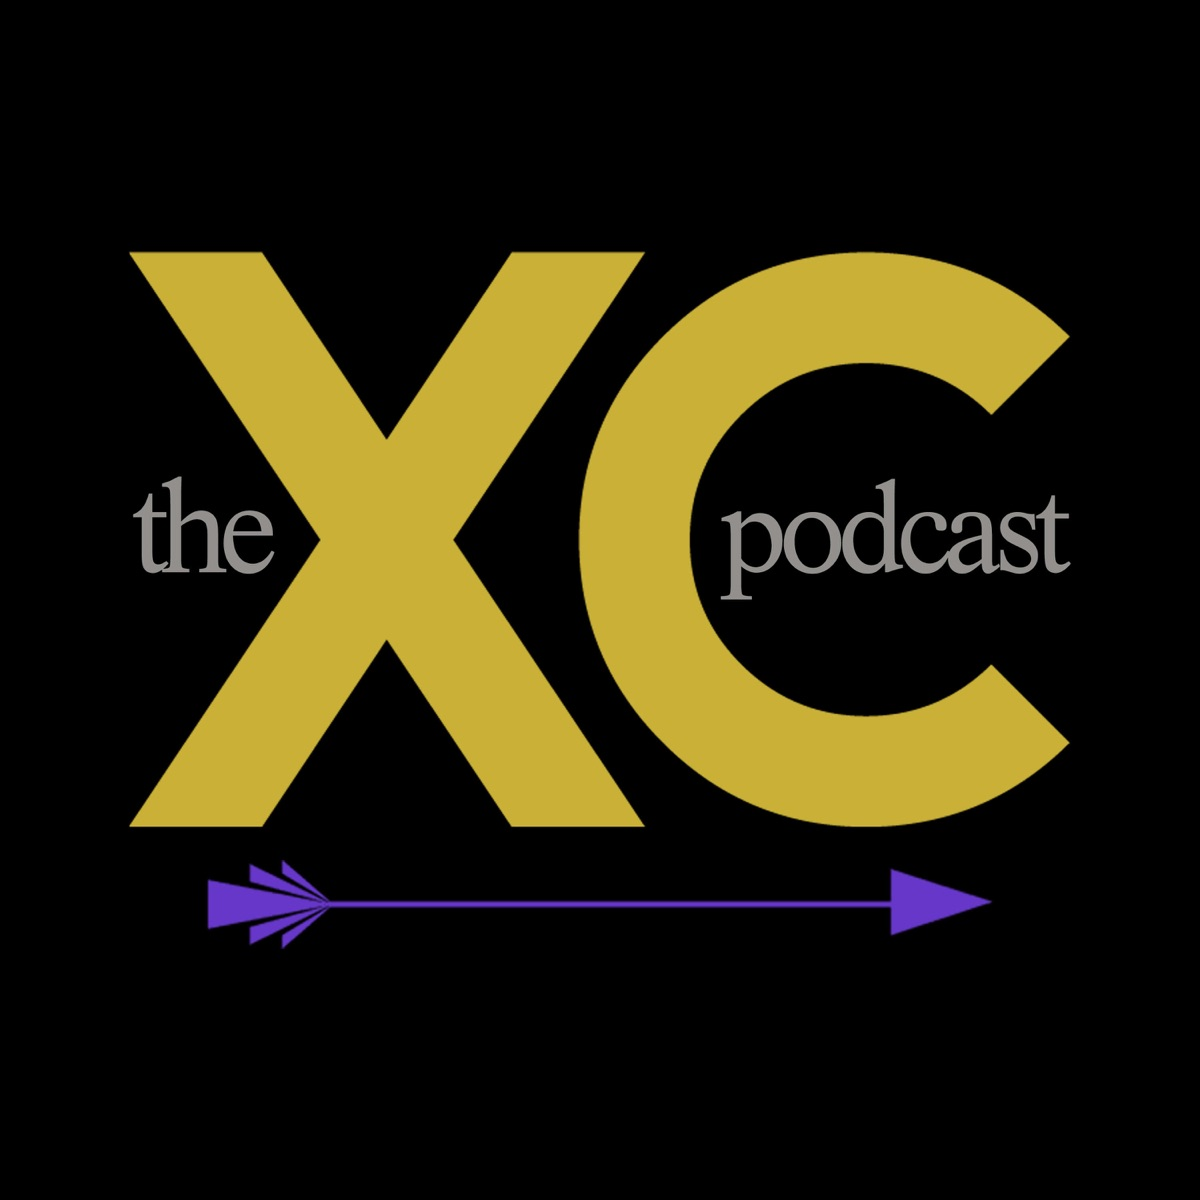 The XC Podcast